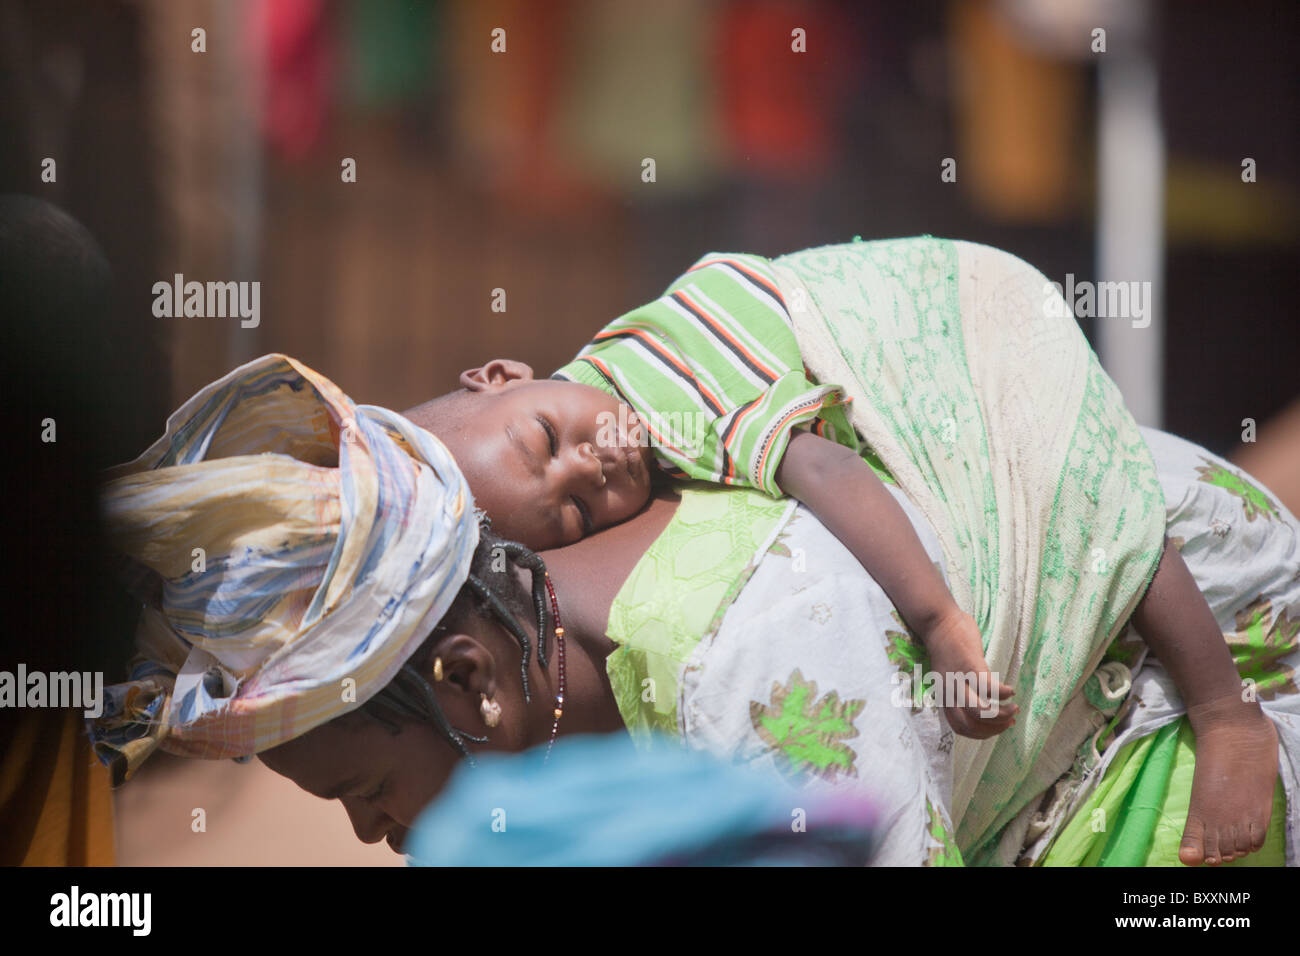 In the town of Djibo in northern Burkina Faso, a woman bends over to examine okra in the market, baby on her back. - Stock Image